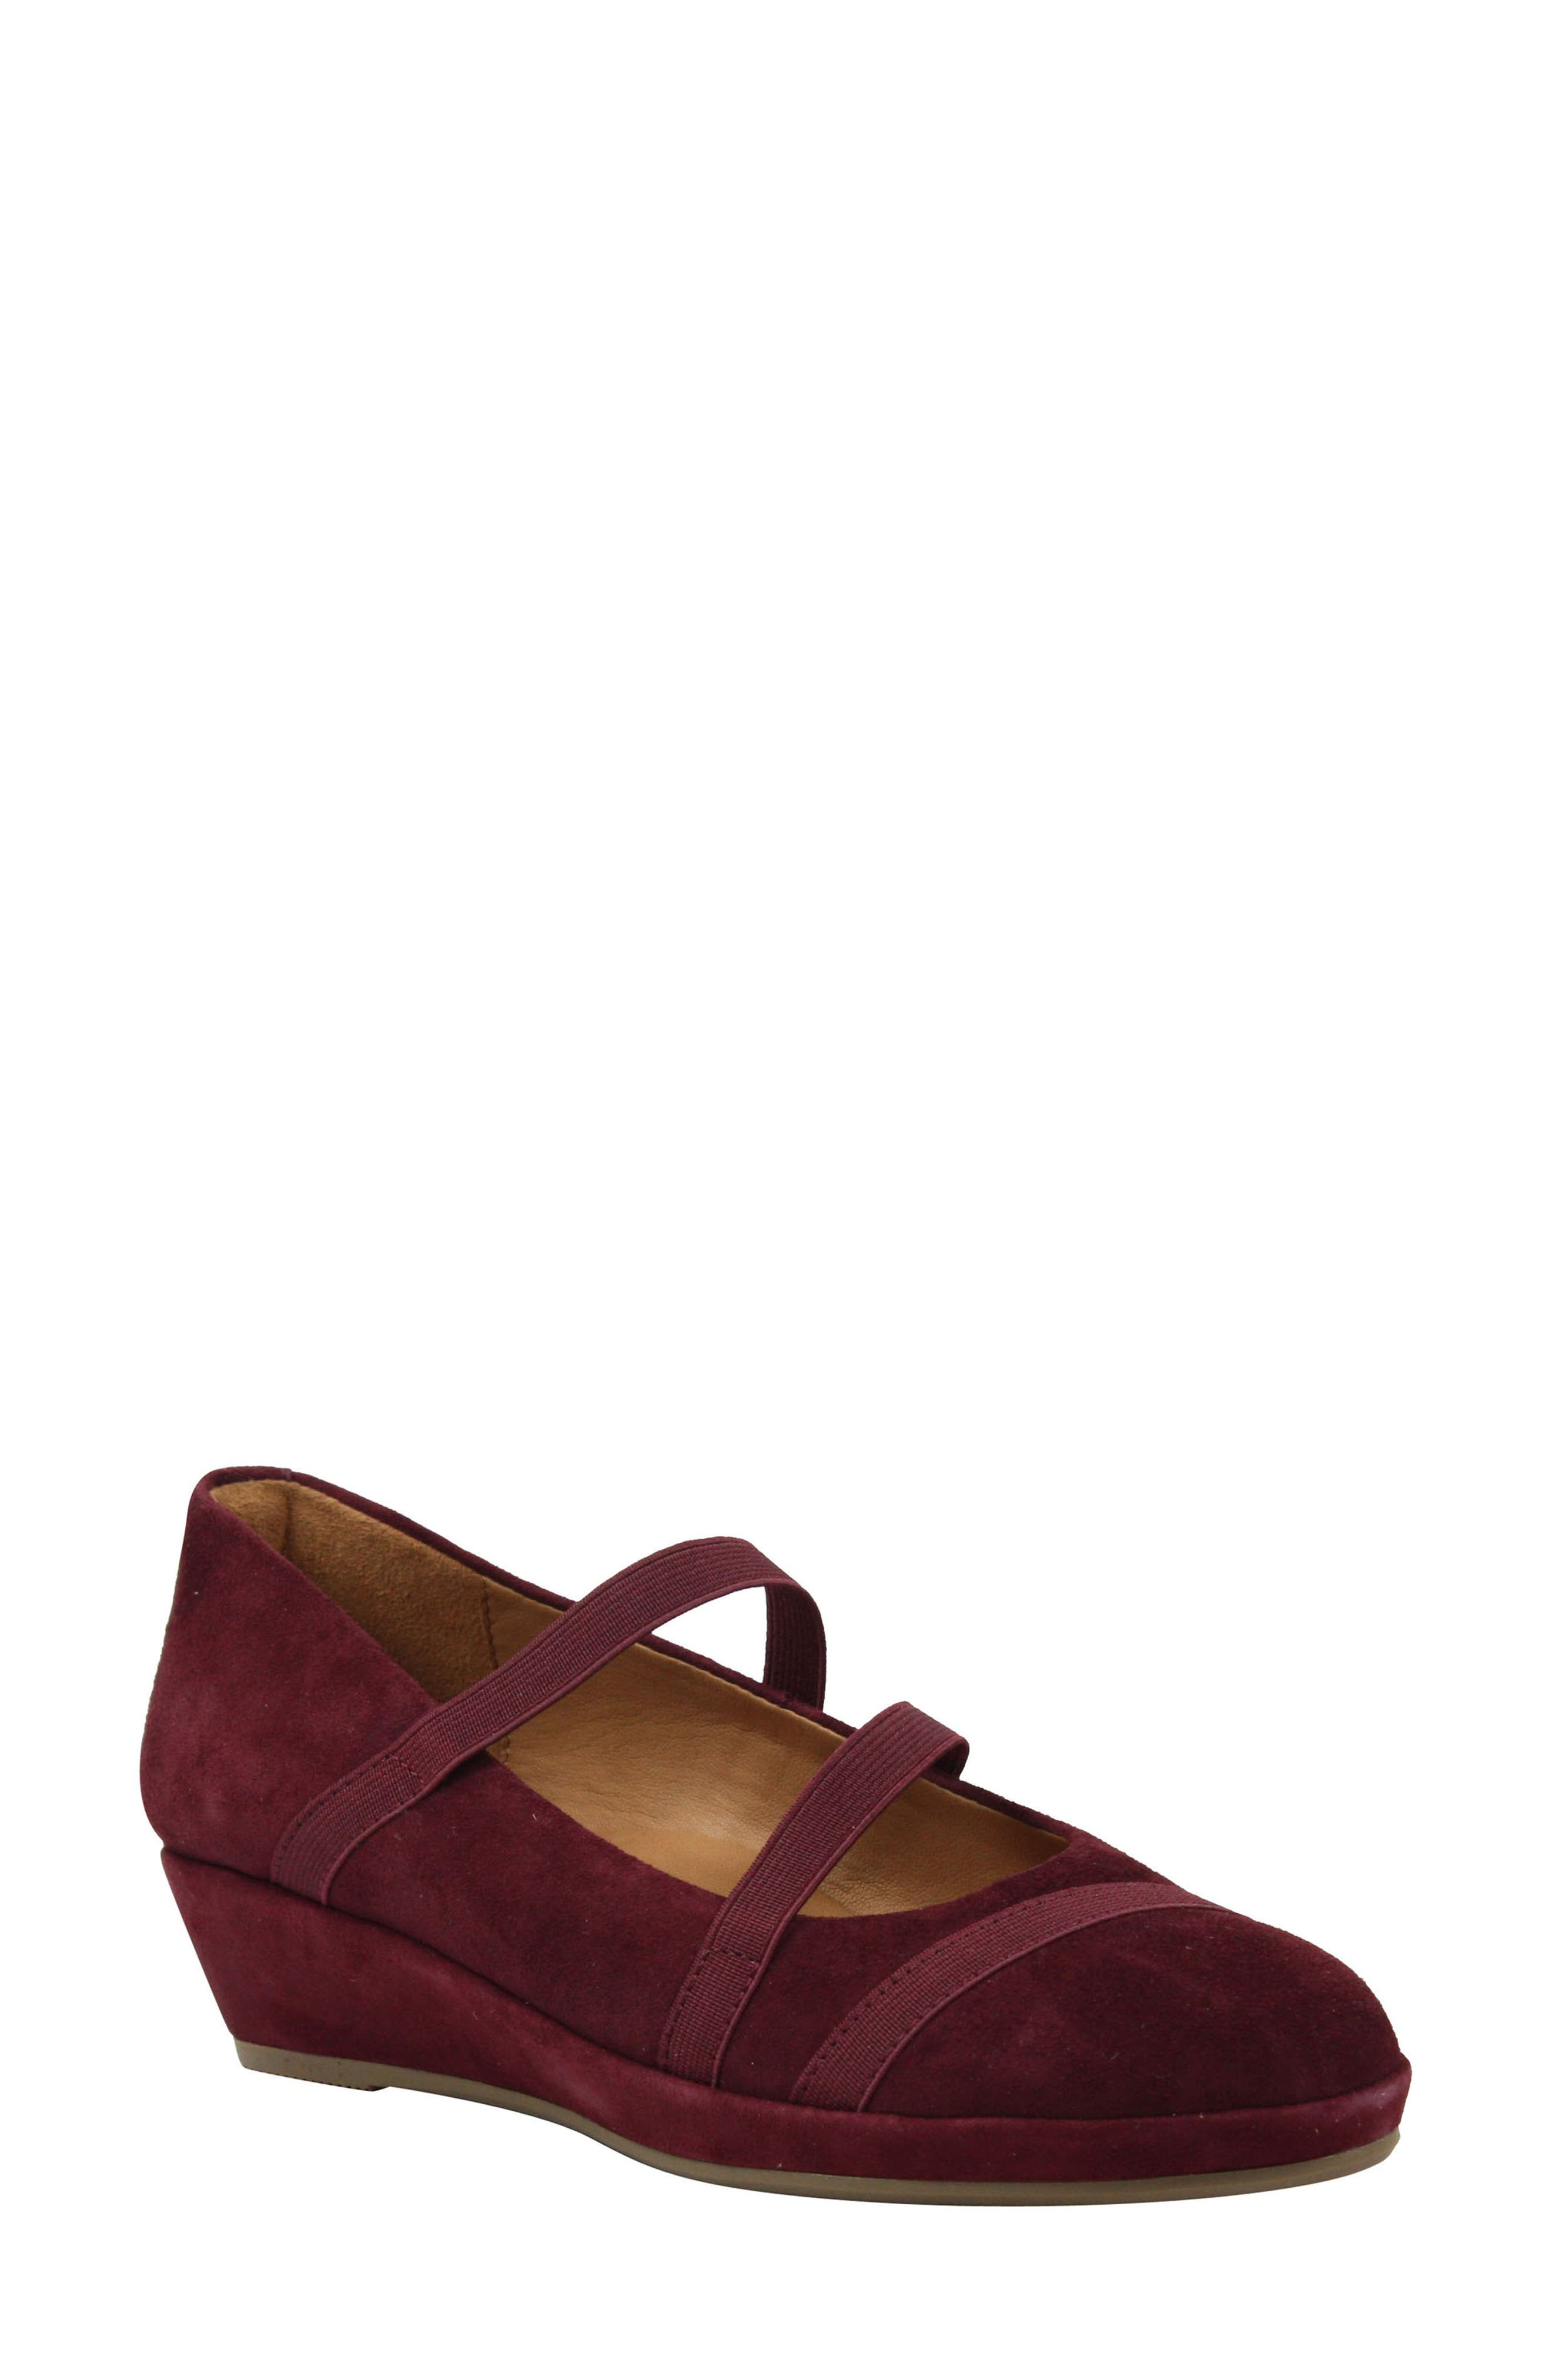 L'AMOUR DES PIEDS Berency Wedge, Main, color, MULBERRY SUEDE